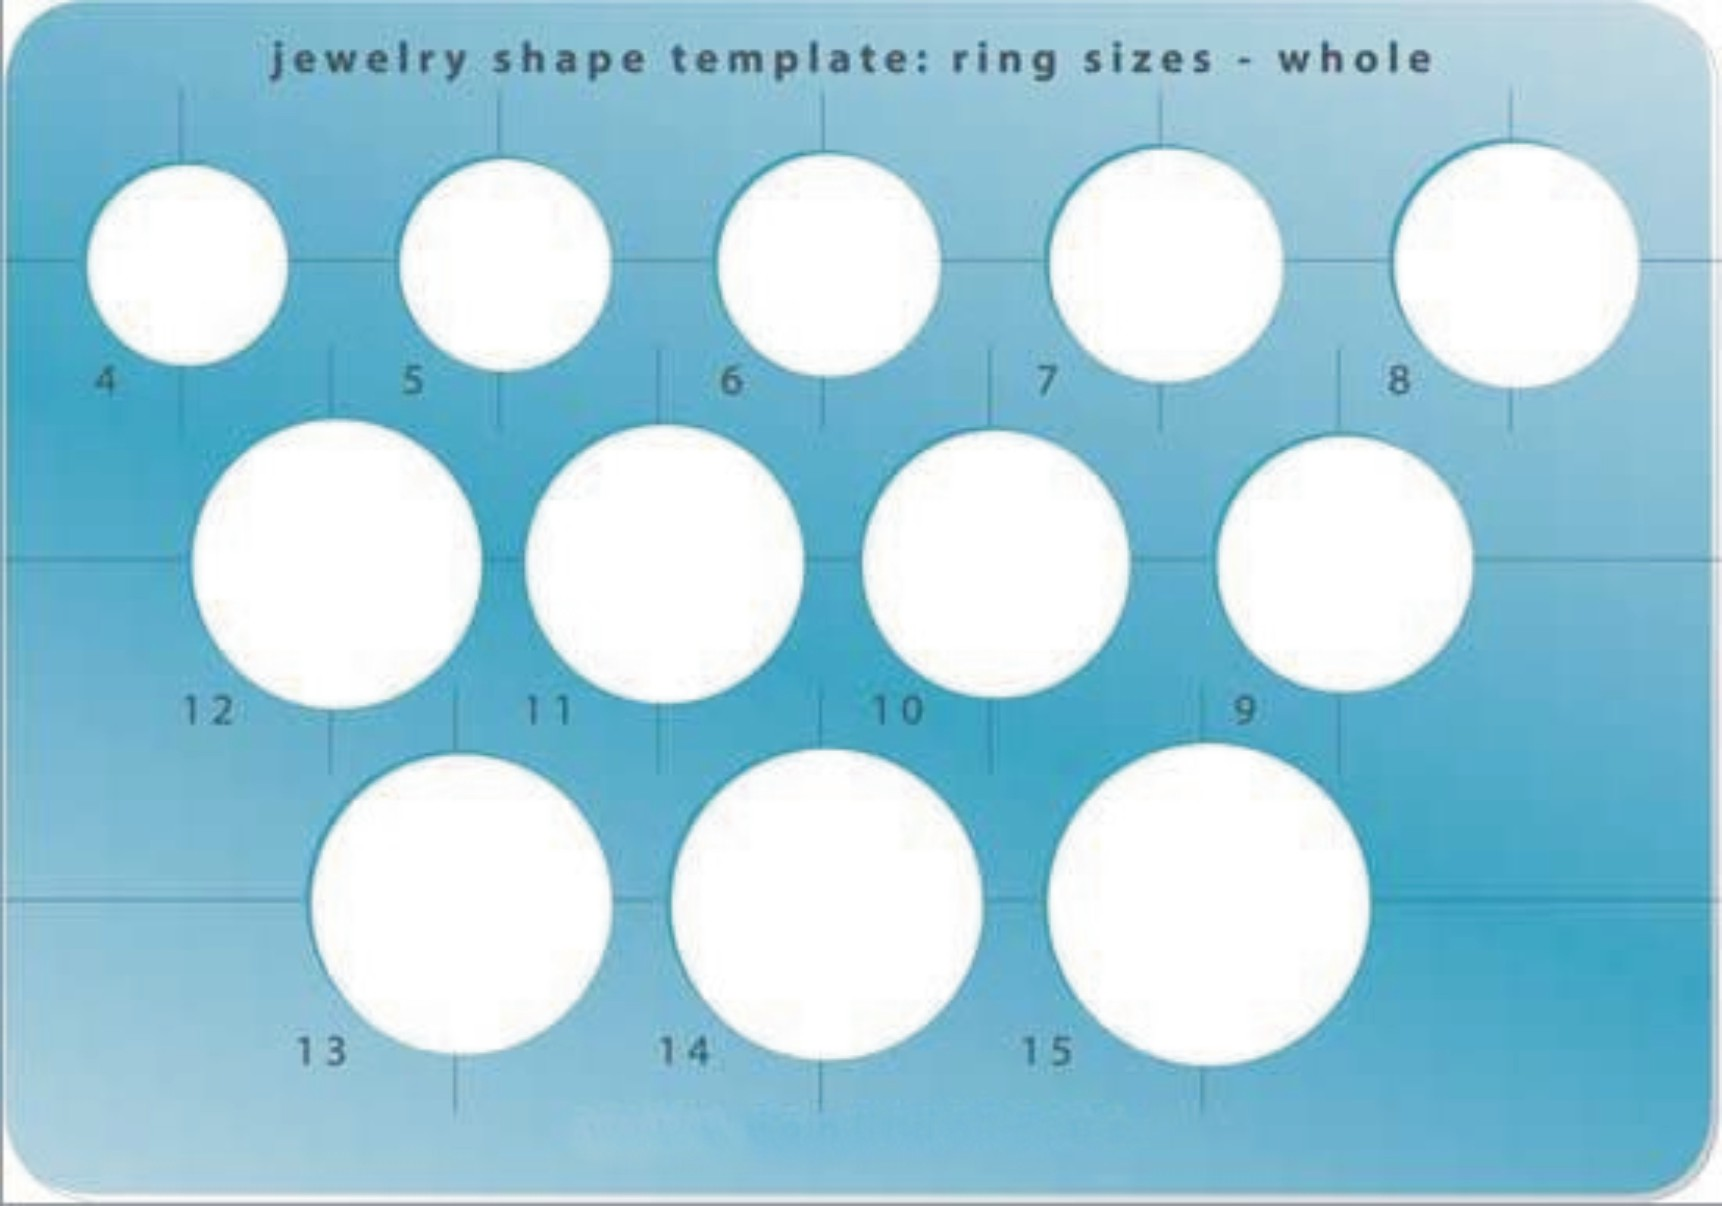 Template - Whole Size Ring Shapes